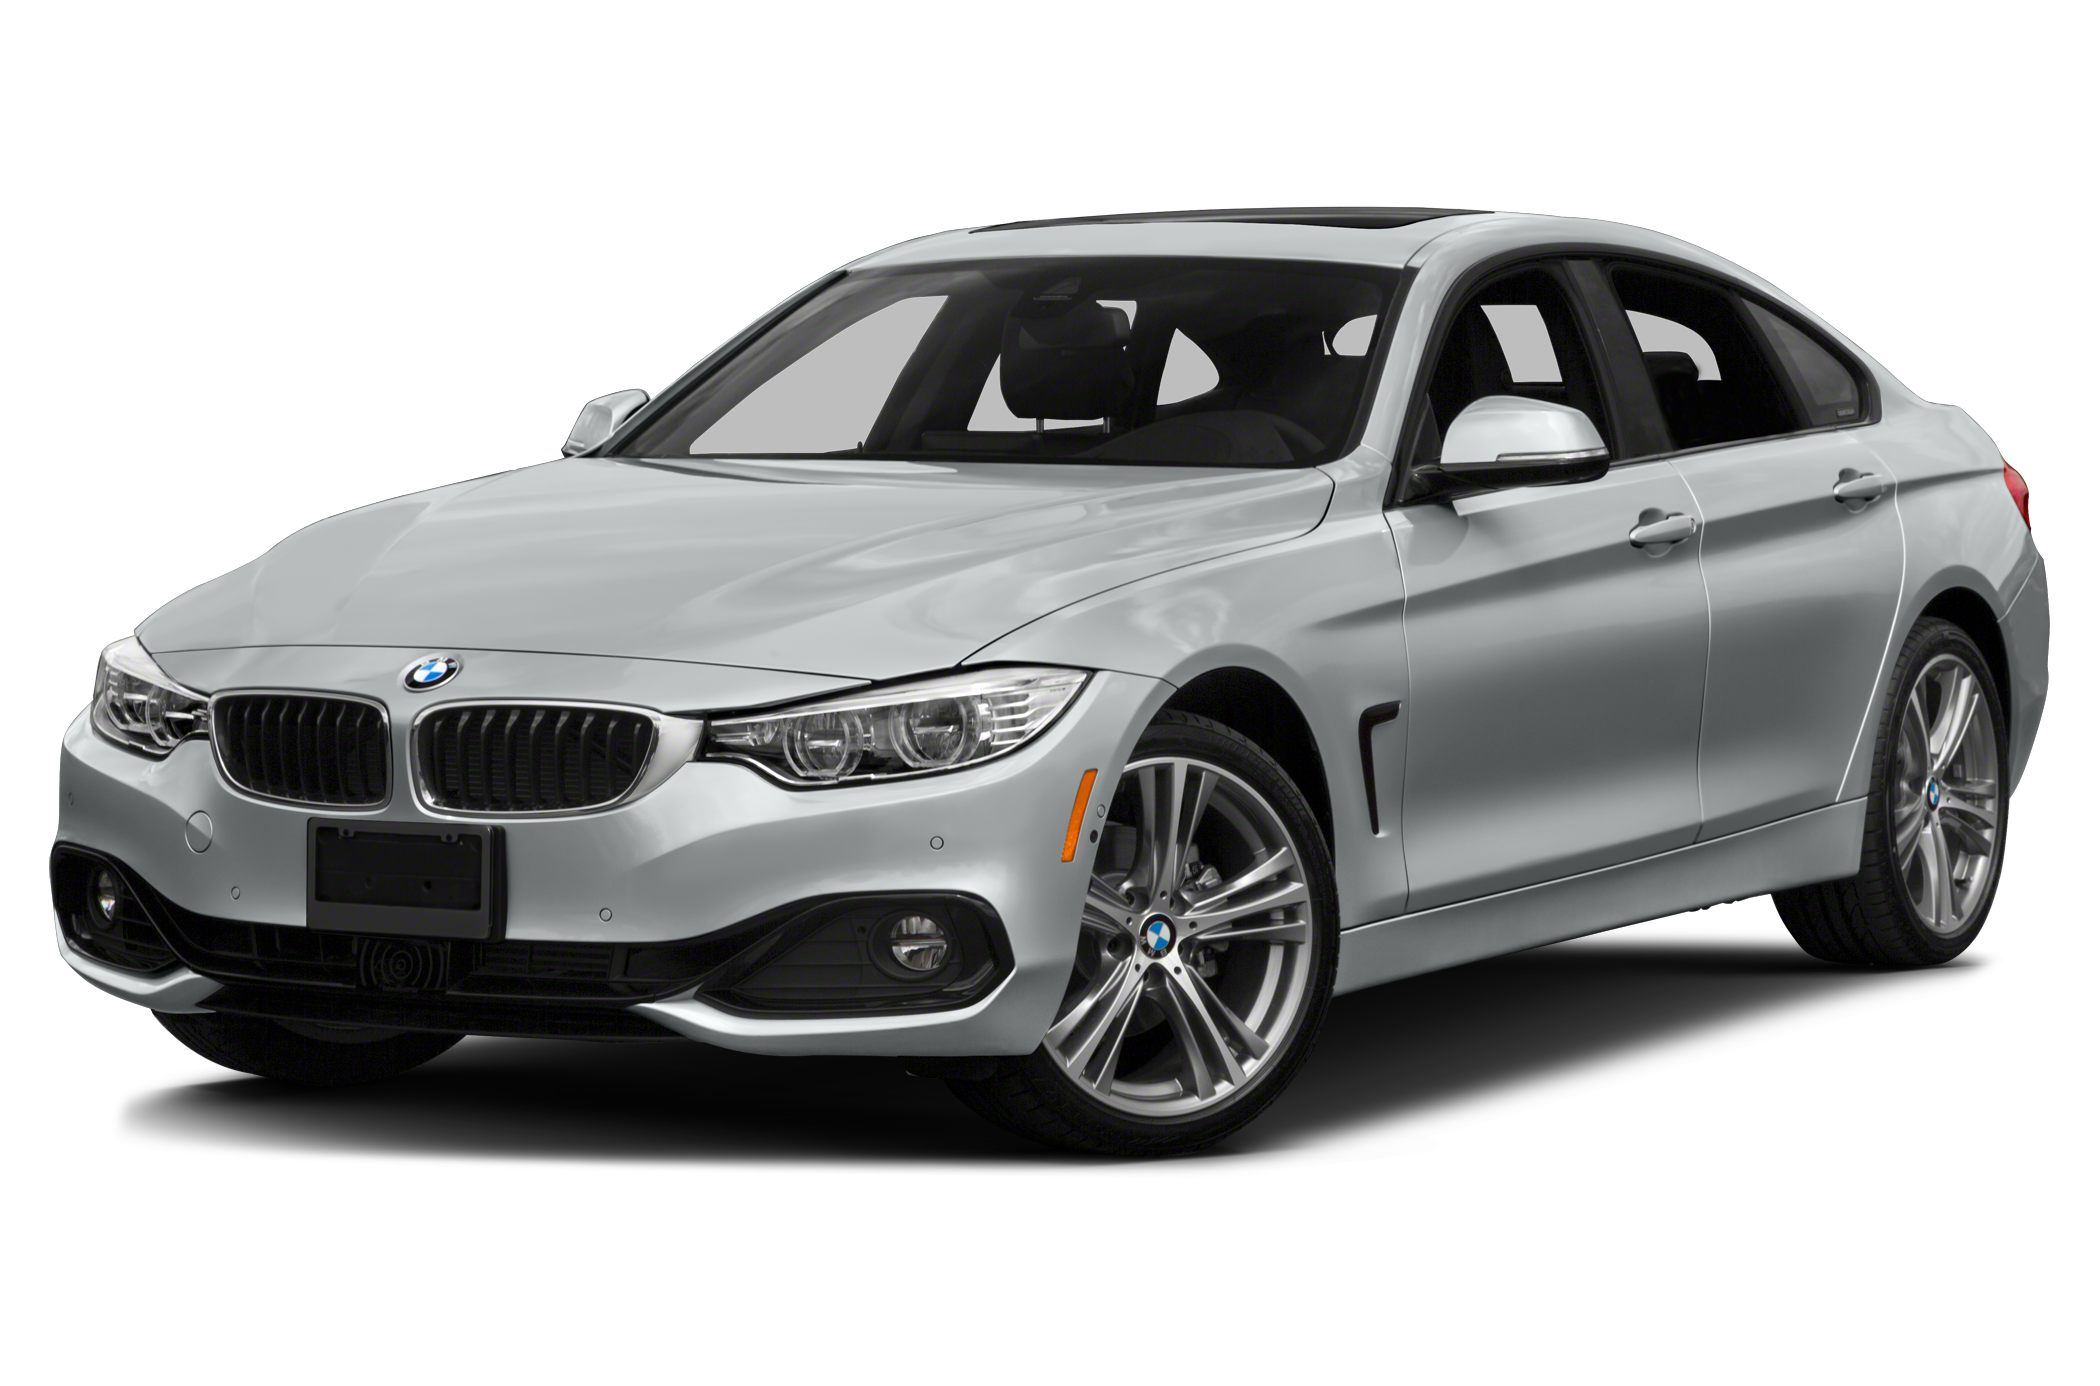 2015 BMW 428 Gran Coupe Specs and Prices